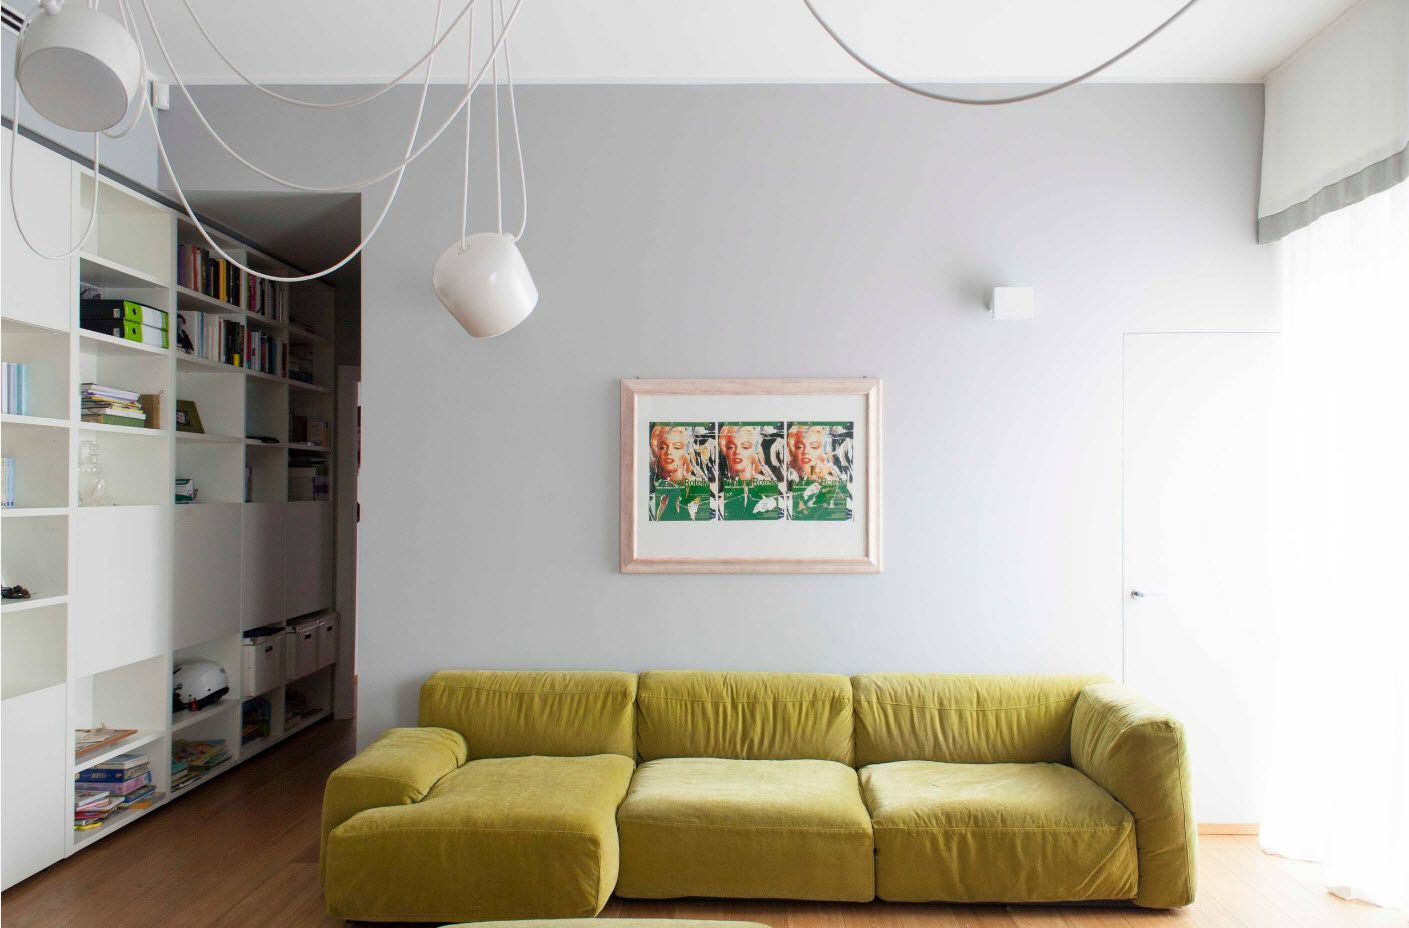 Suspended lamp with open cord and yellow retro sofa in the loft interior